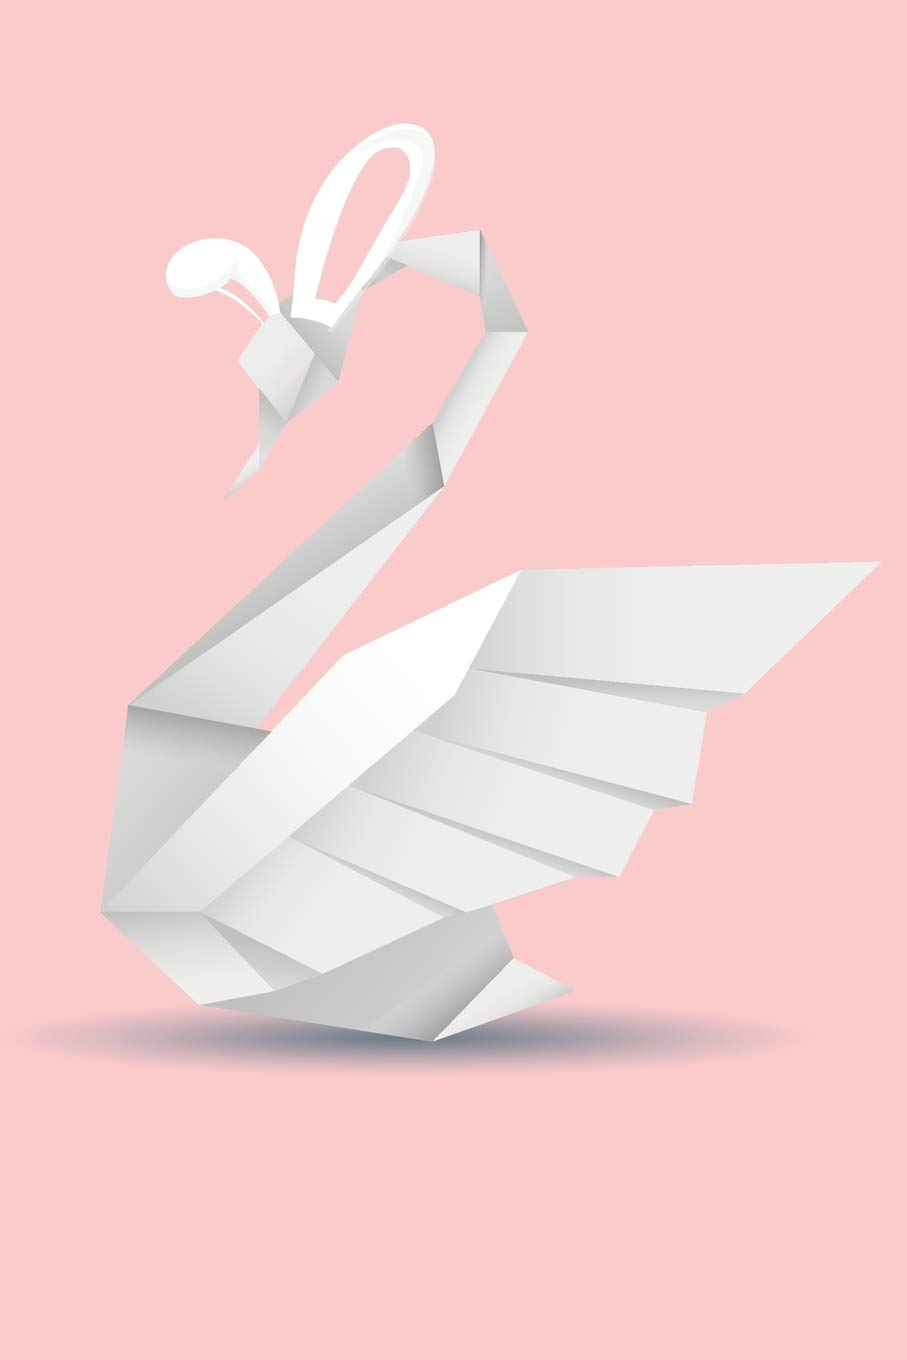 Origami swans couple and swanling | 1360x907